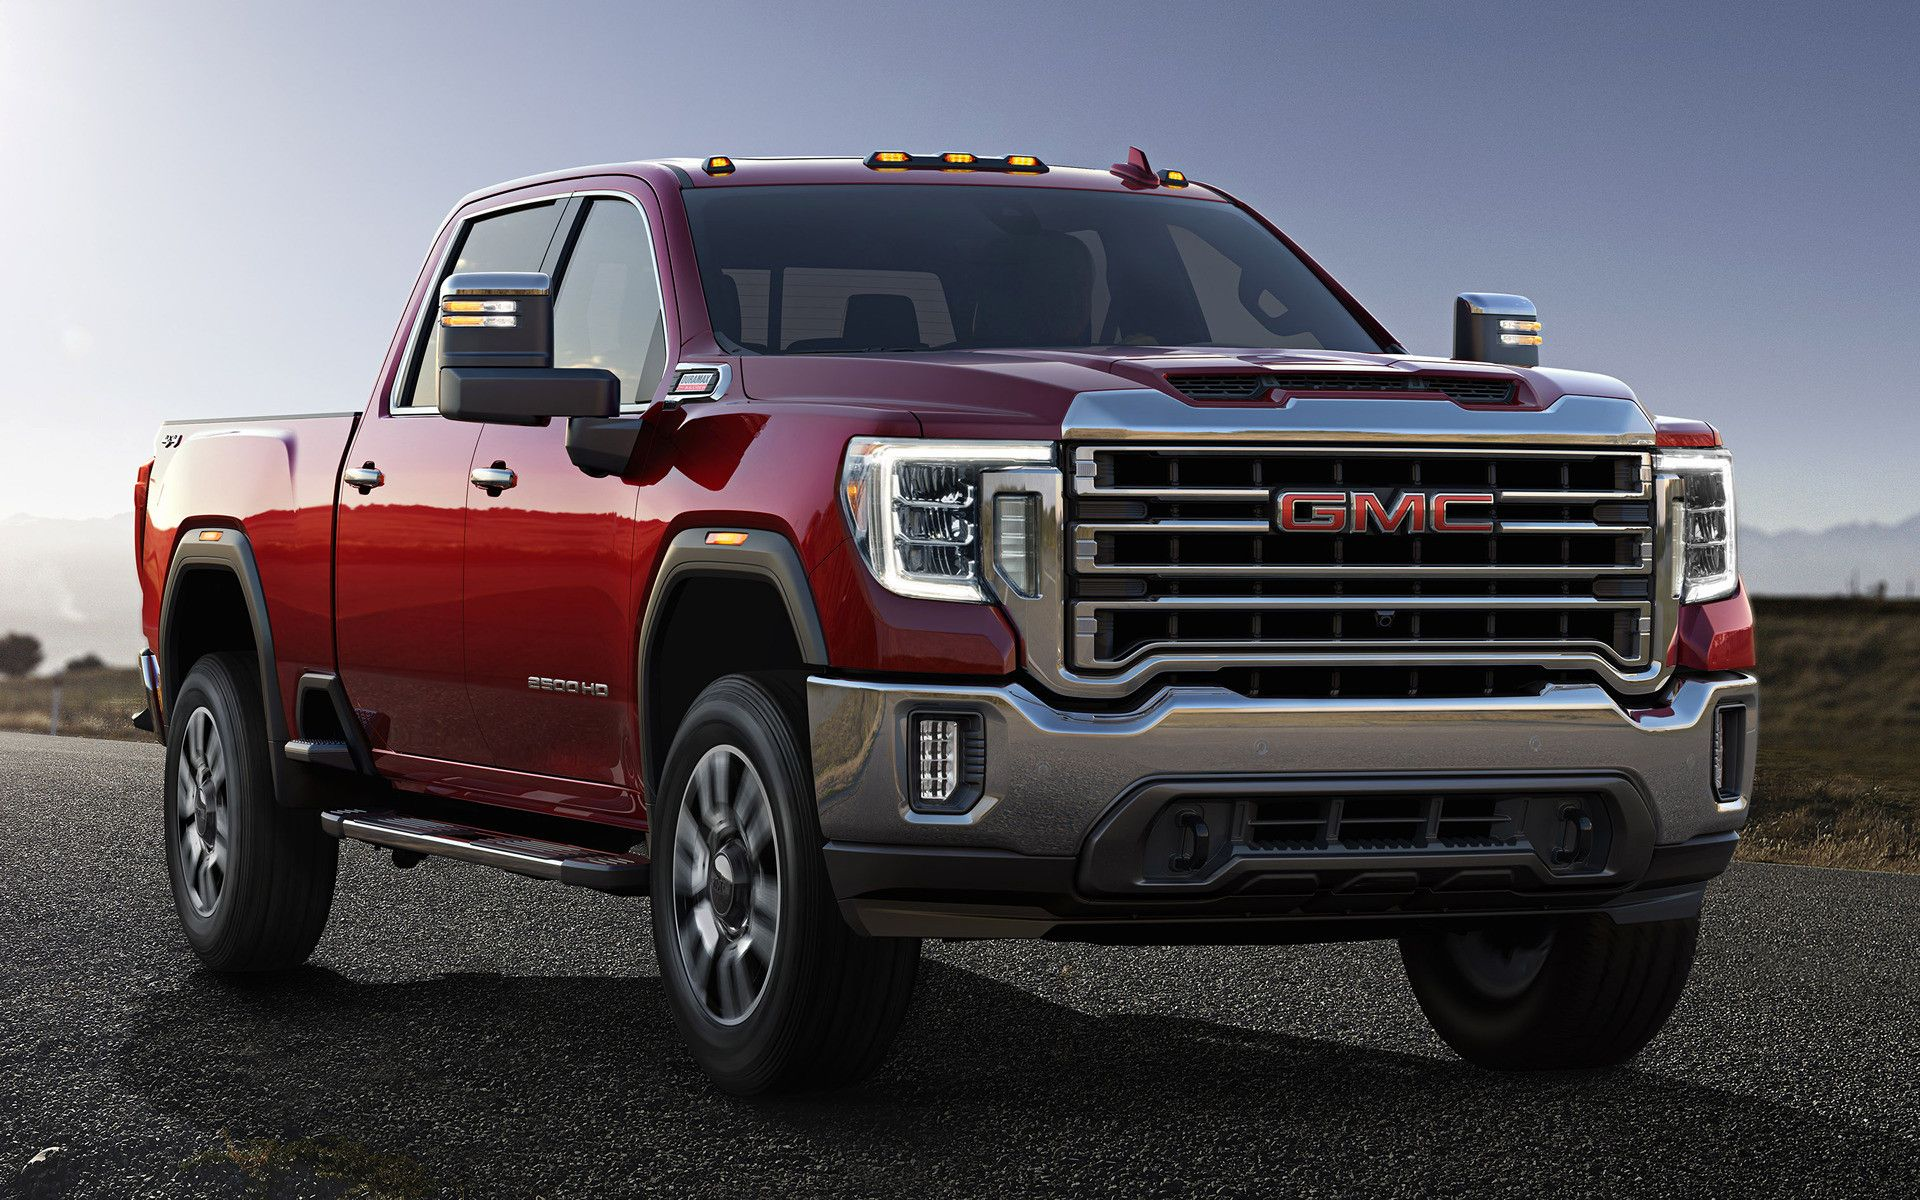 2020 Gmc 2500 Motors Concept For 2020 Gmc 2500 Motors Release Date